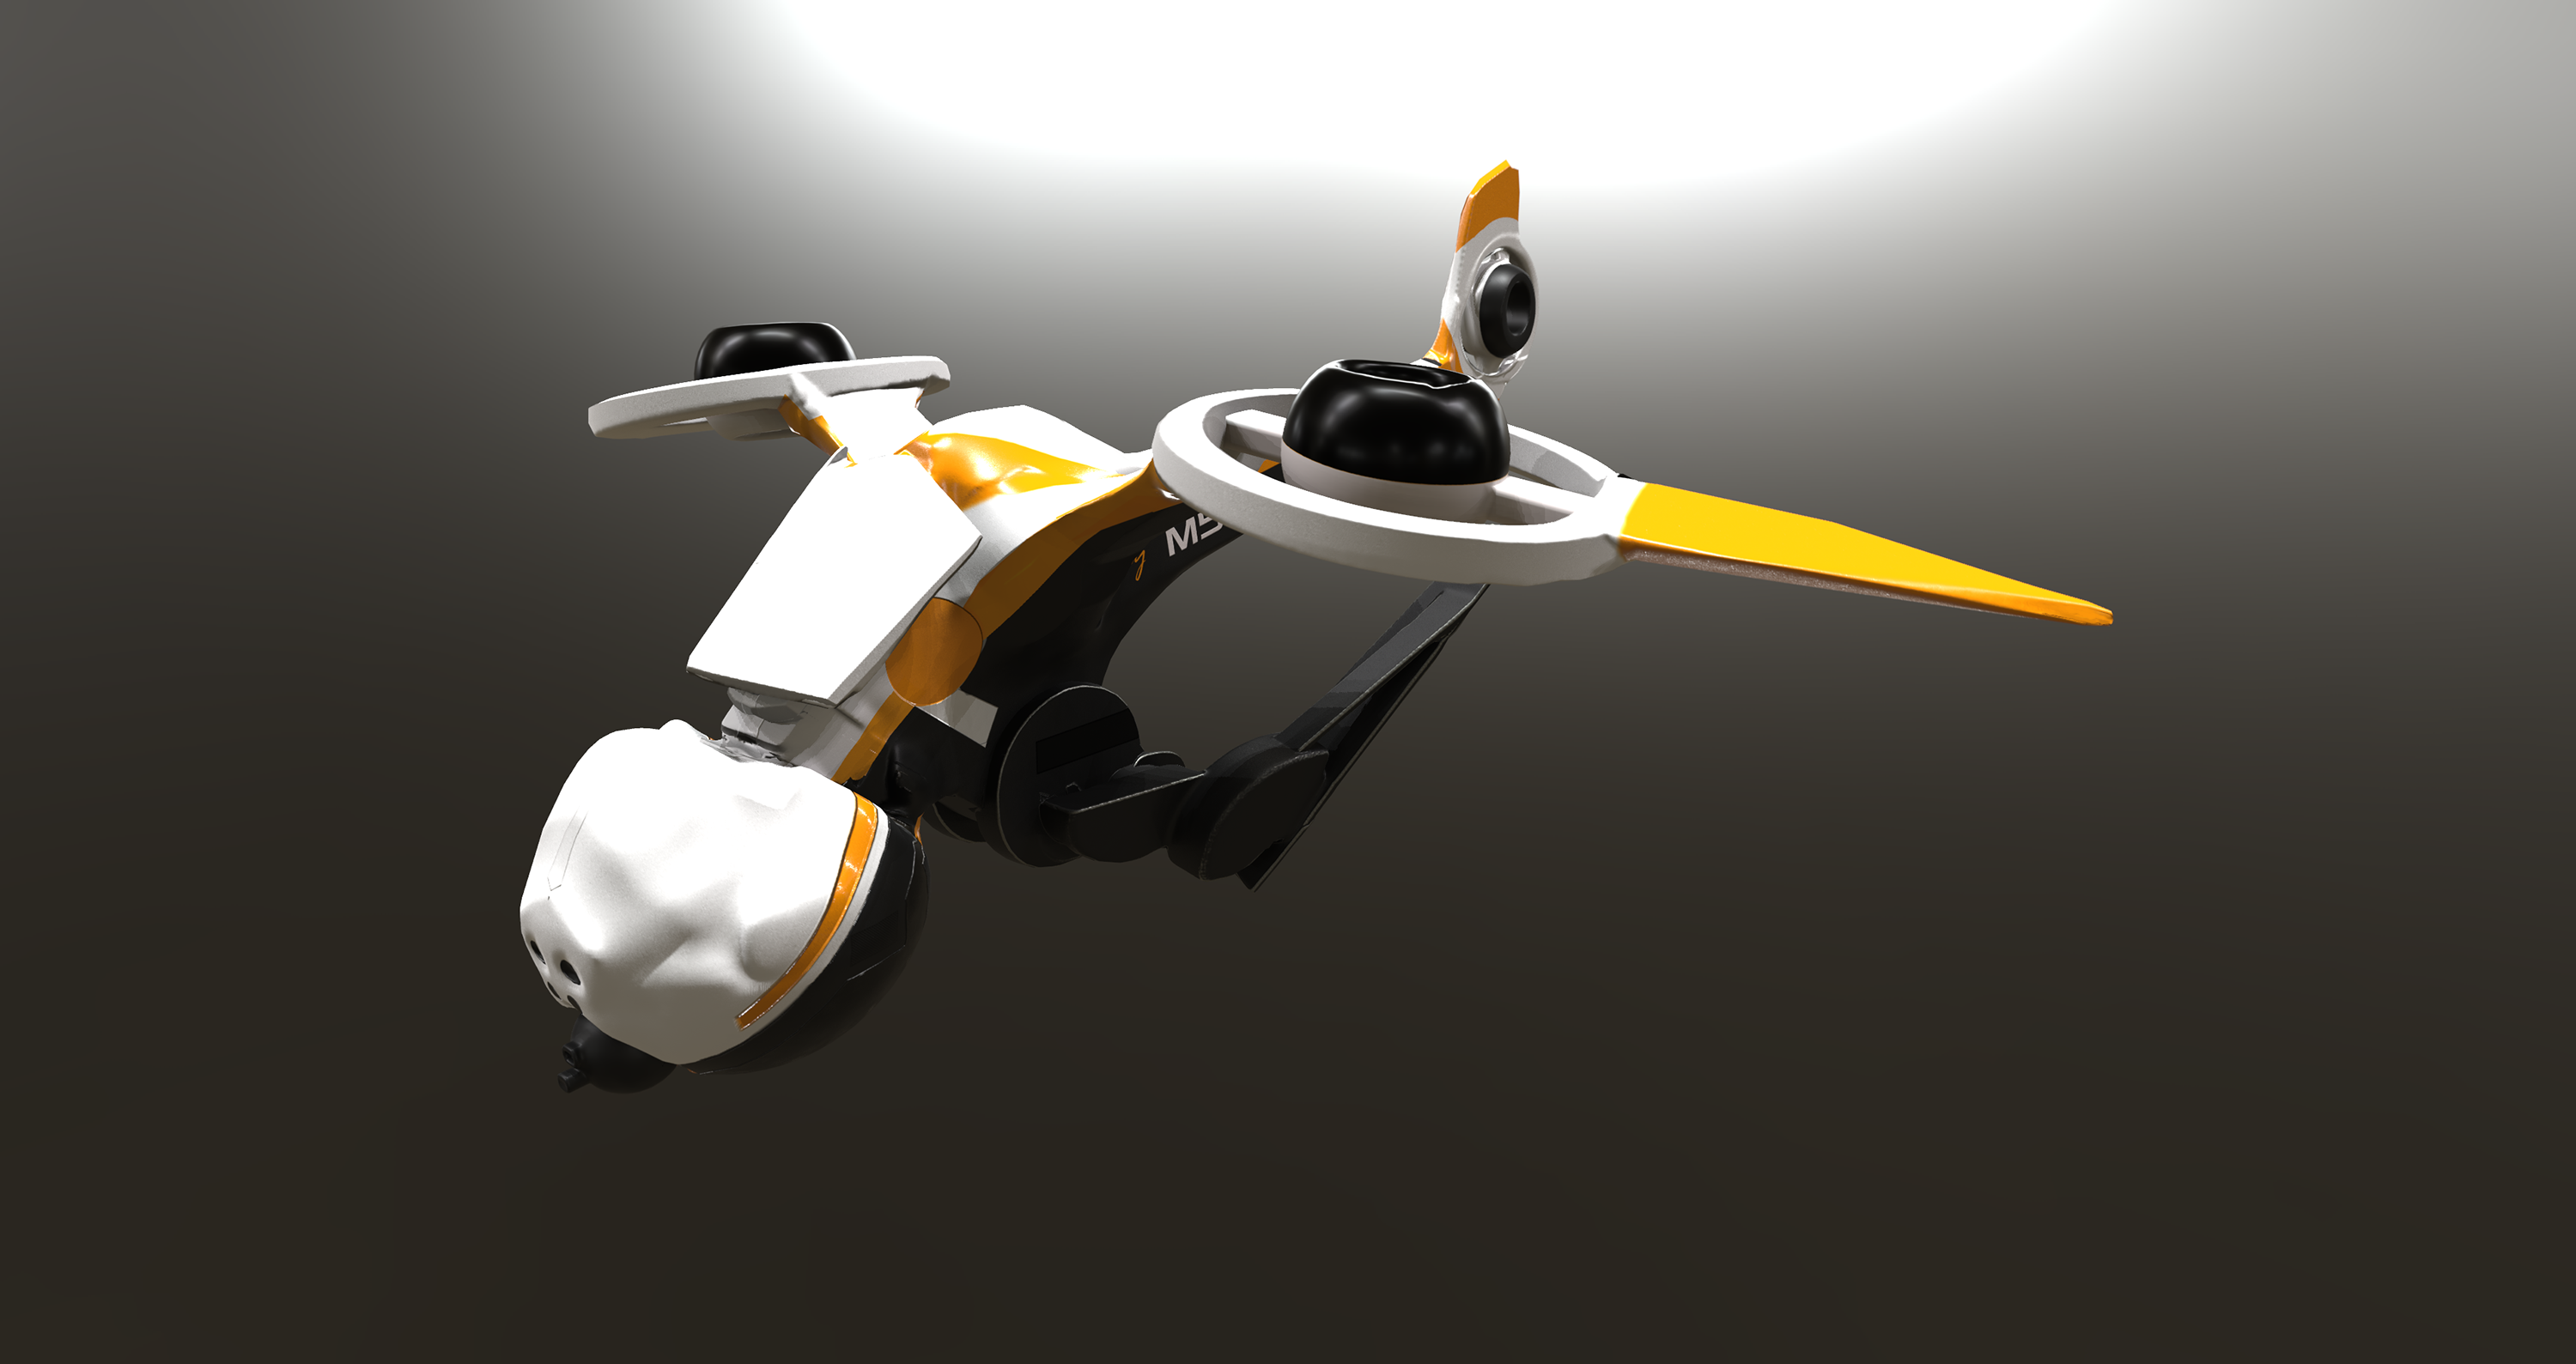 Drone wip 5.png